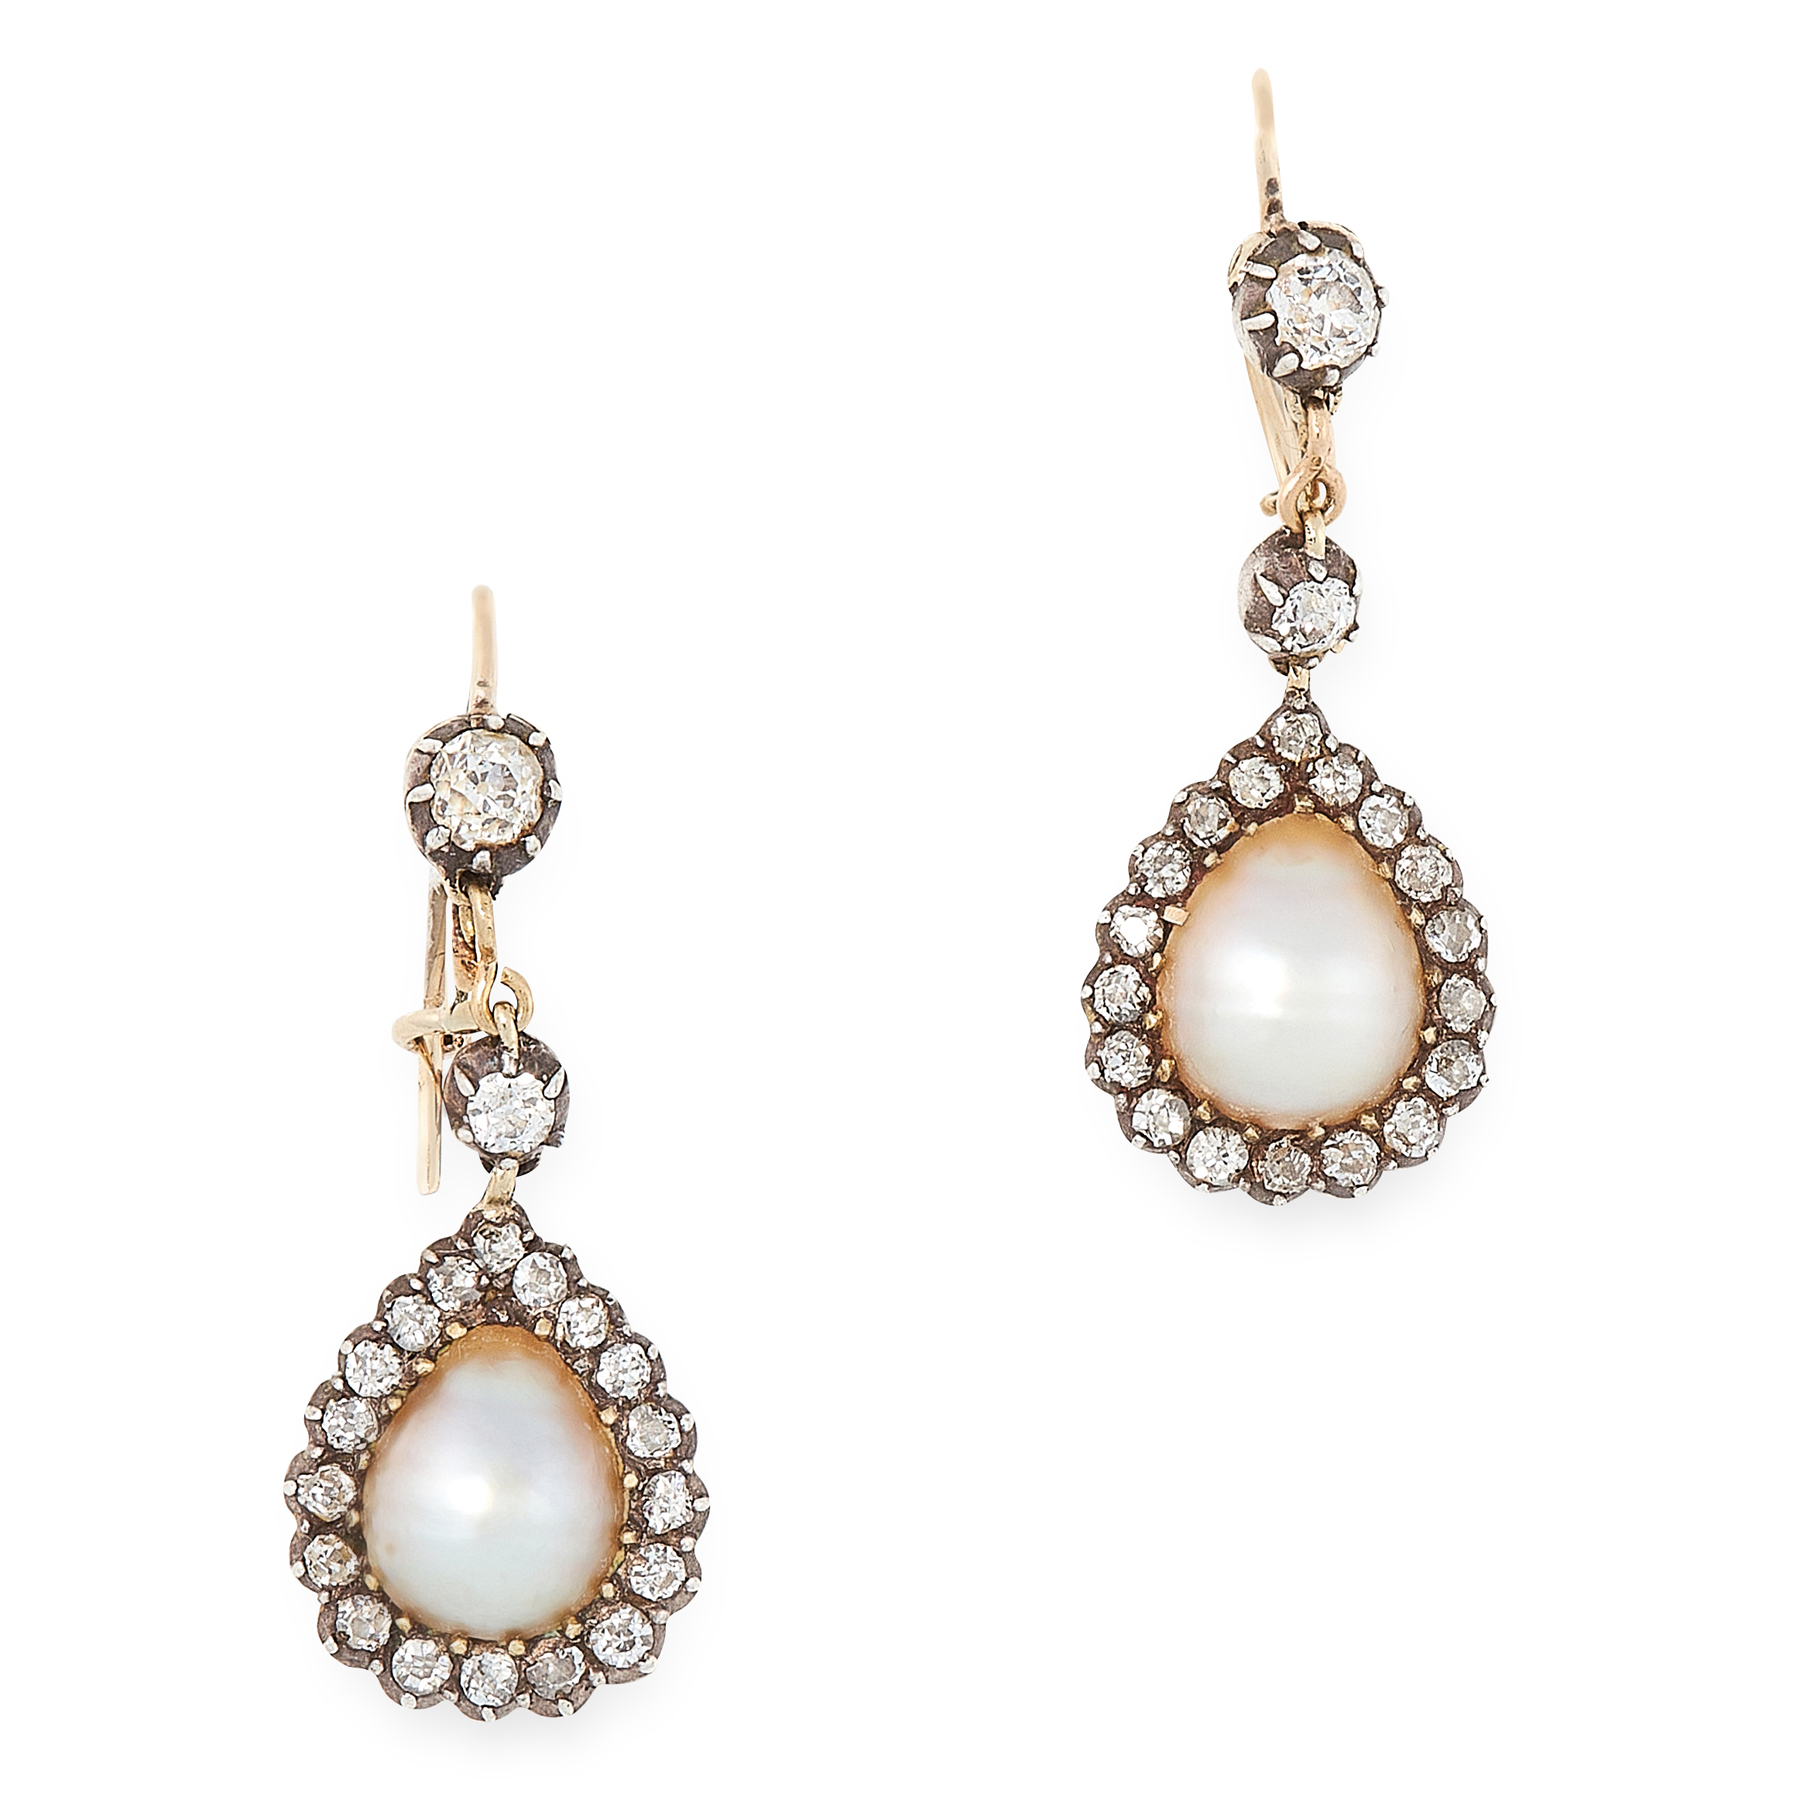 A PAIR OF PEARL AND DIAMOND DROP EARRINGS in yellow gold and silver, each set with a drop shaped